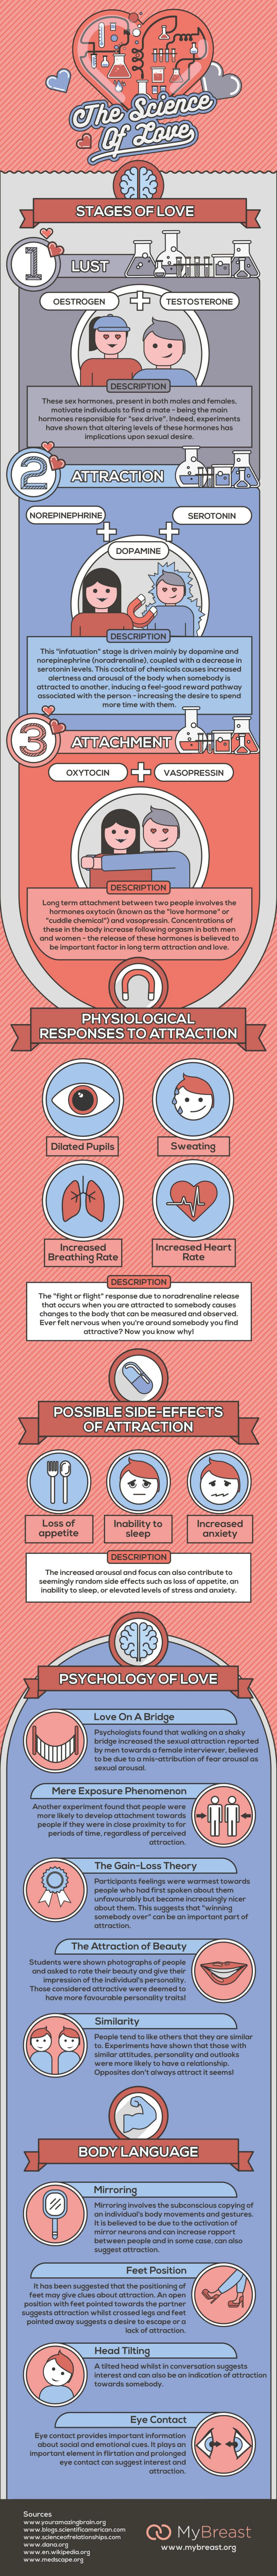 The Science of Love InfographicThe Science of Love Infographic